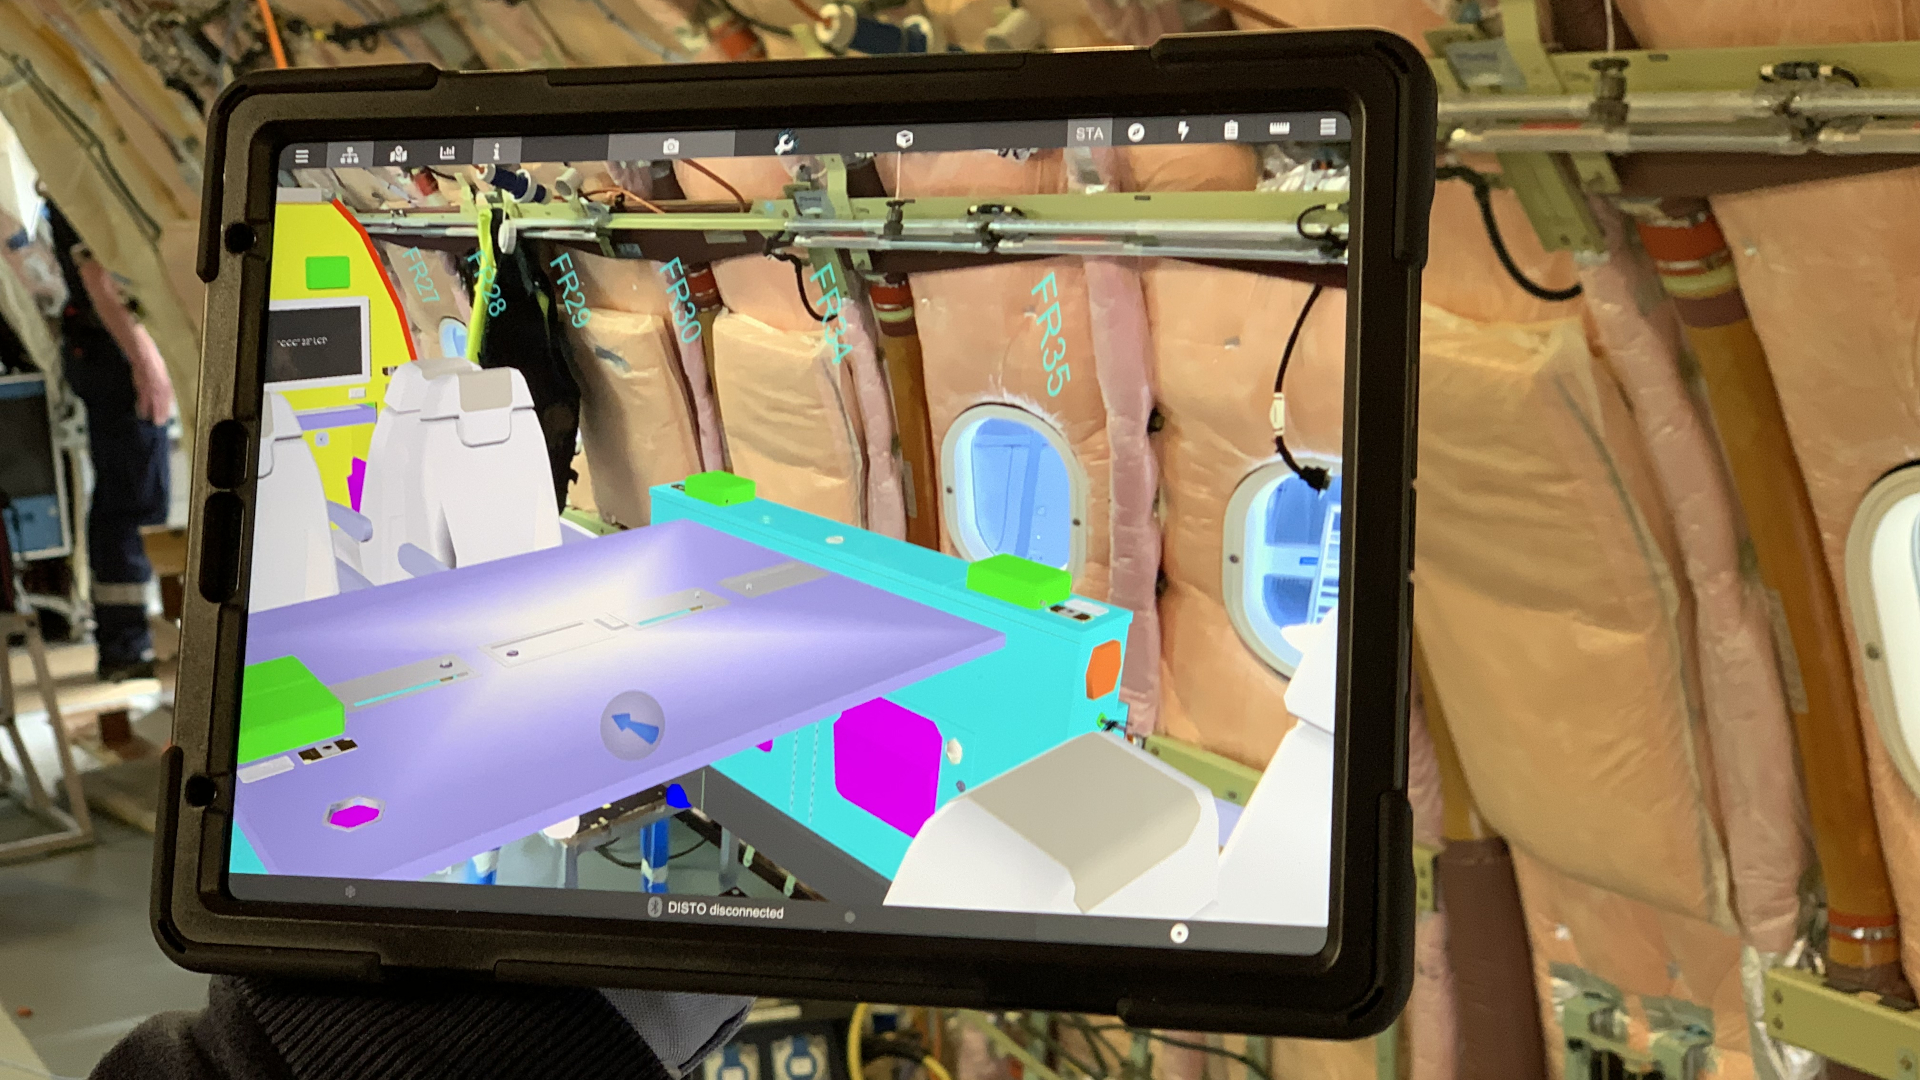 Augmented reality thanks to seemless 5G in the aircraft